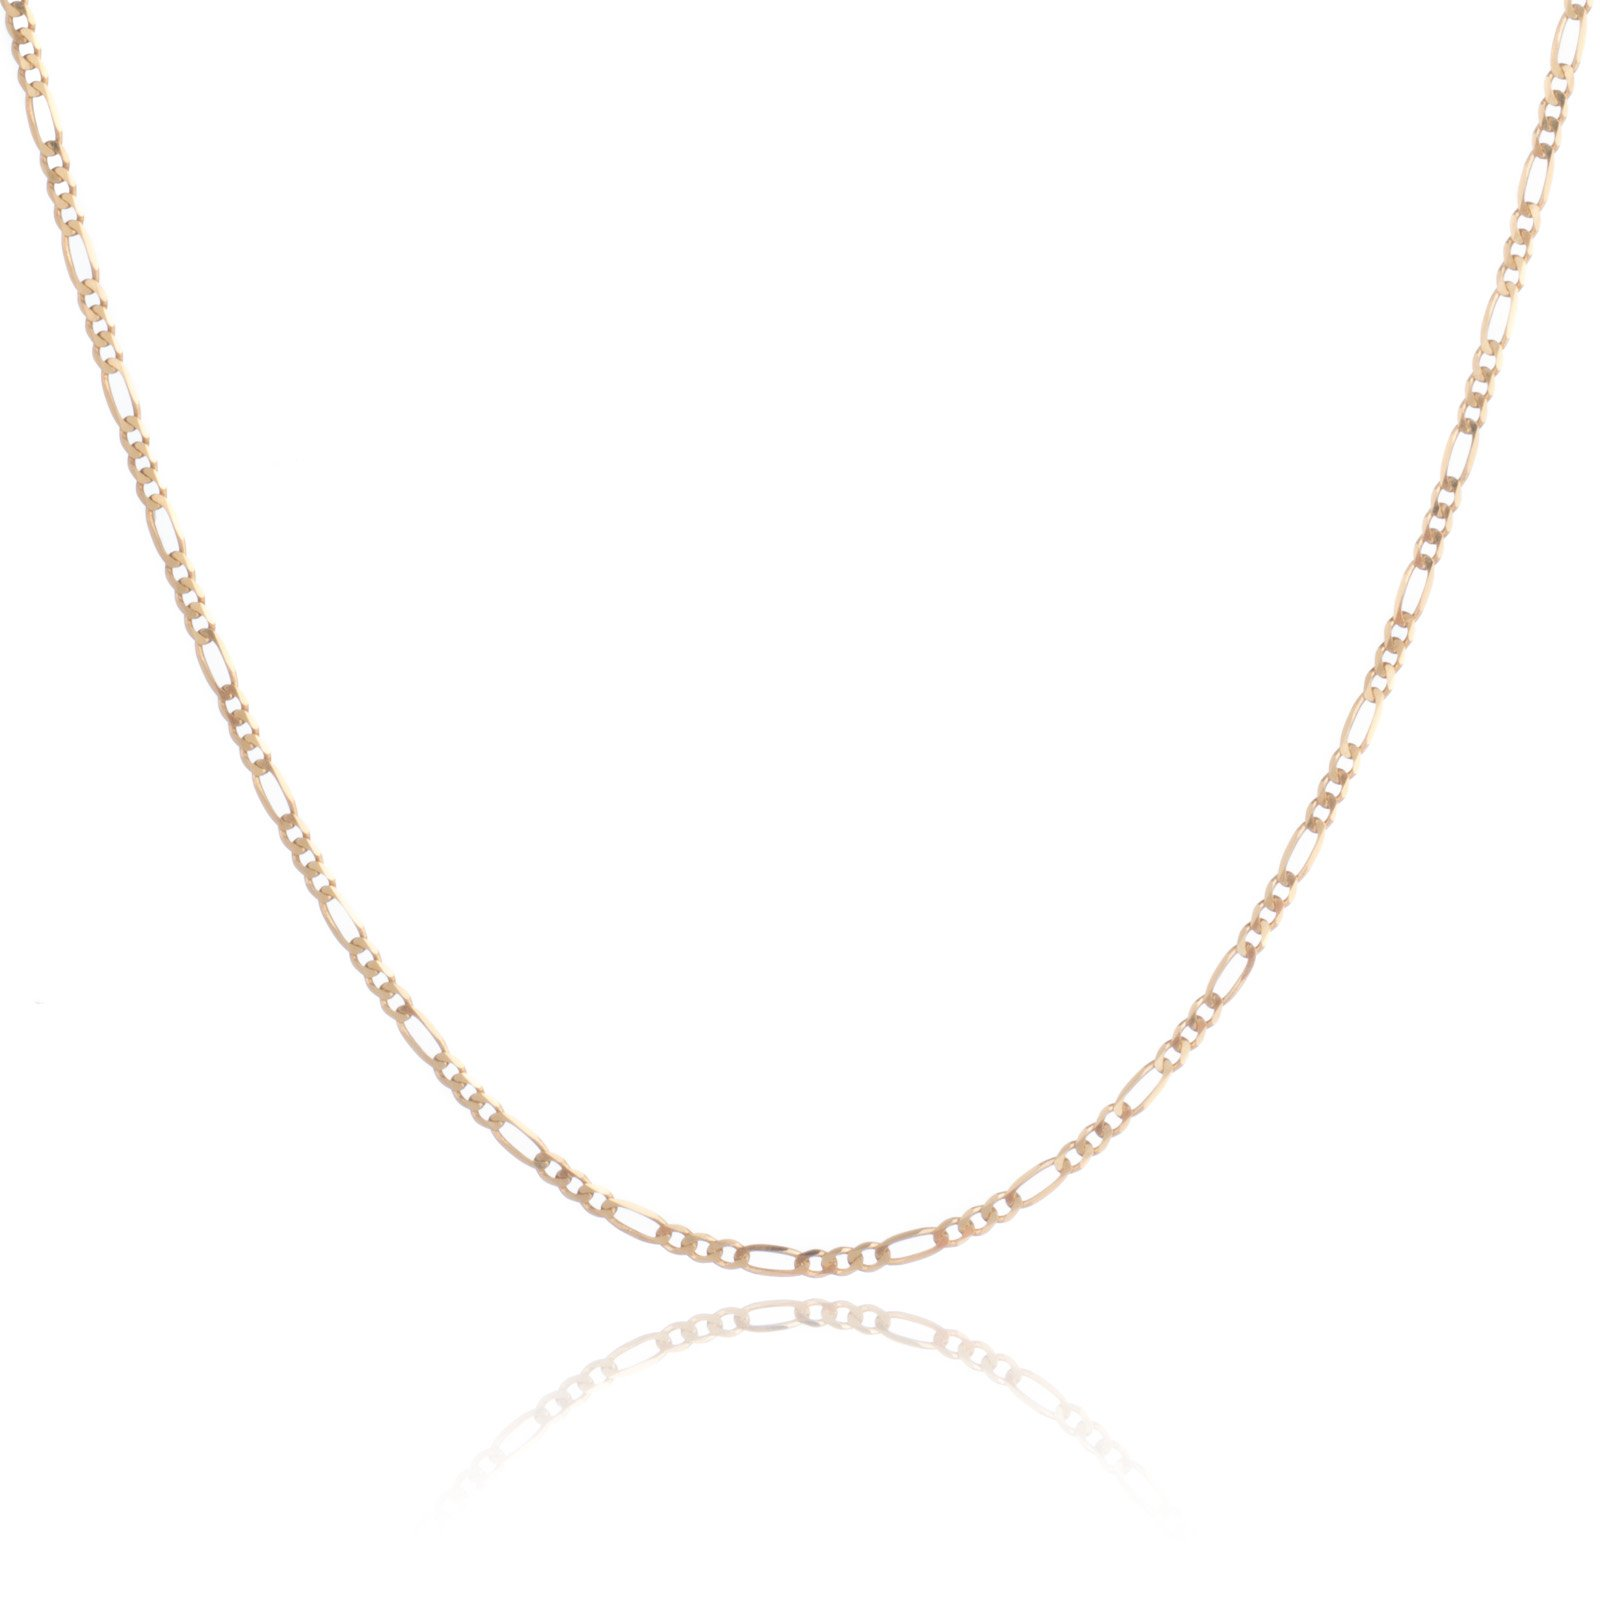 14 Inch 10k Yellow Gold Figaro Chain Necklace with Concave Look, 0.1 Inch (2.5mm)